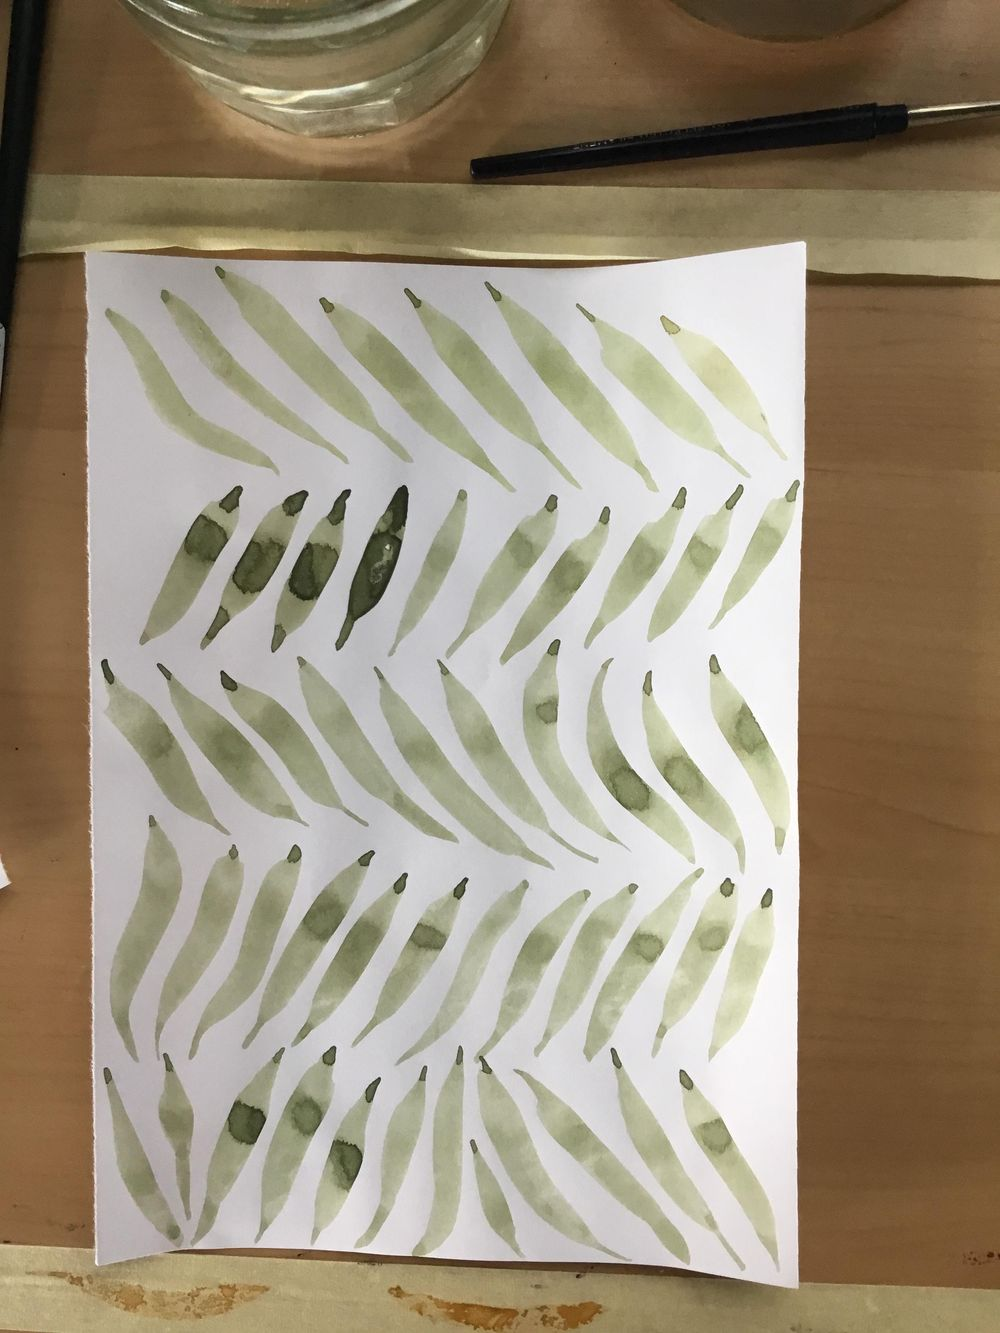 Watercolor workout - image 13 - student project